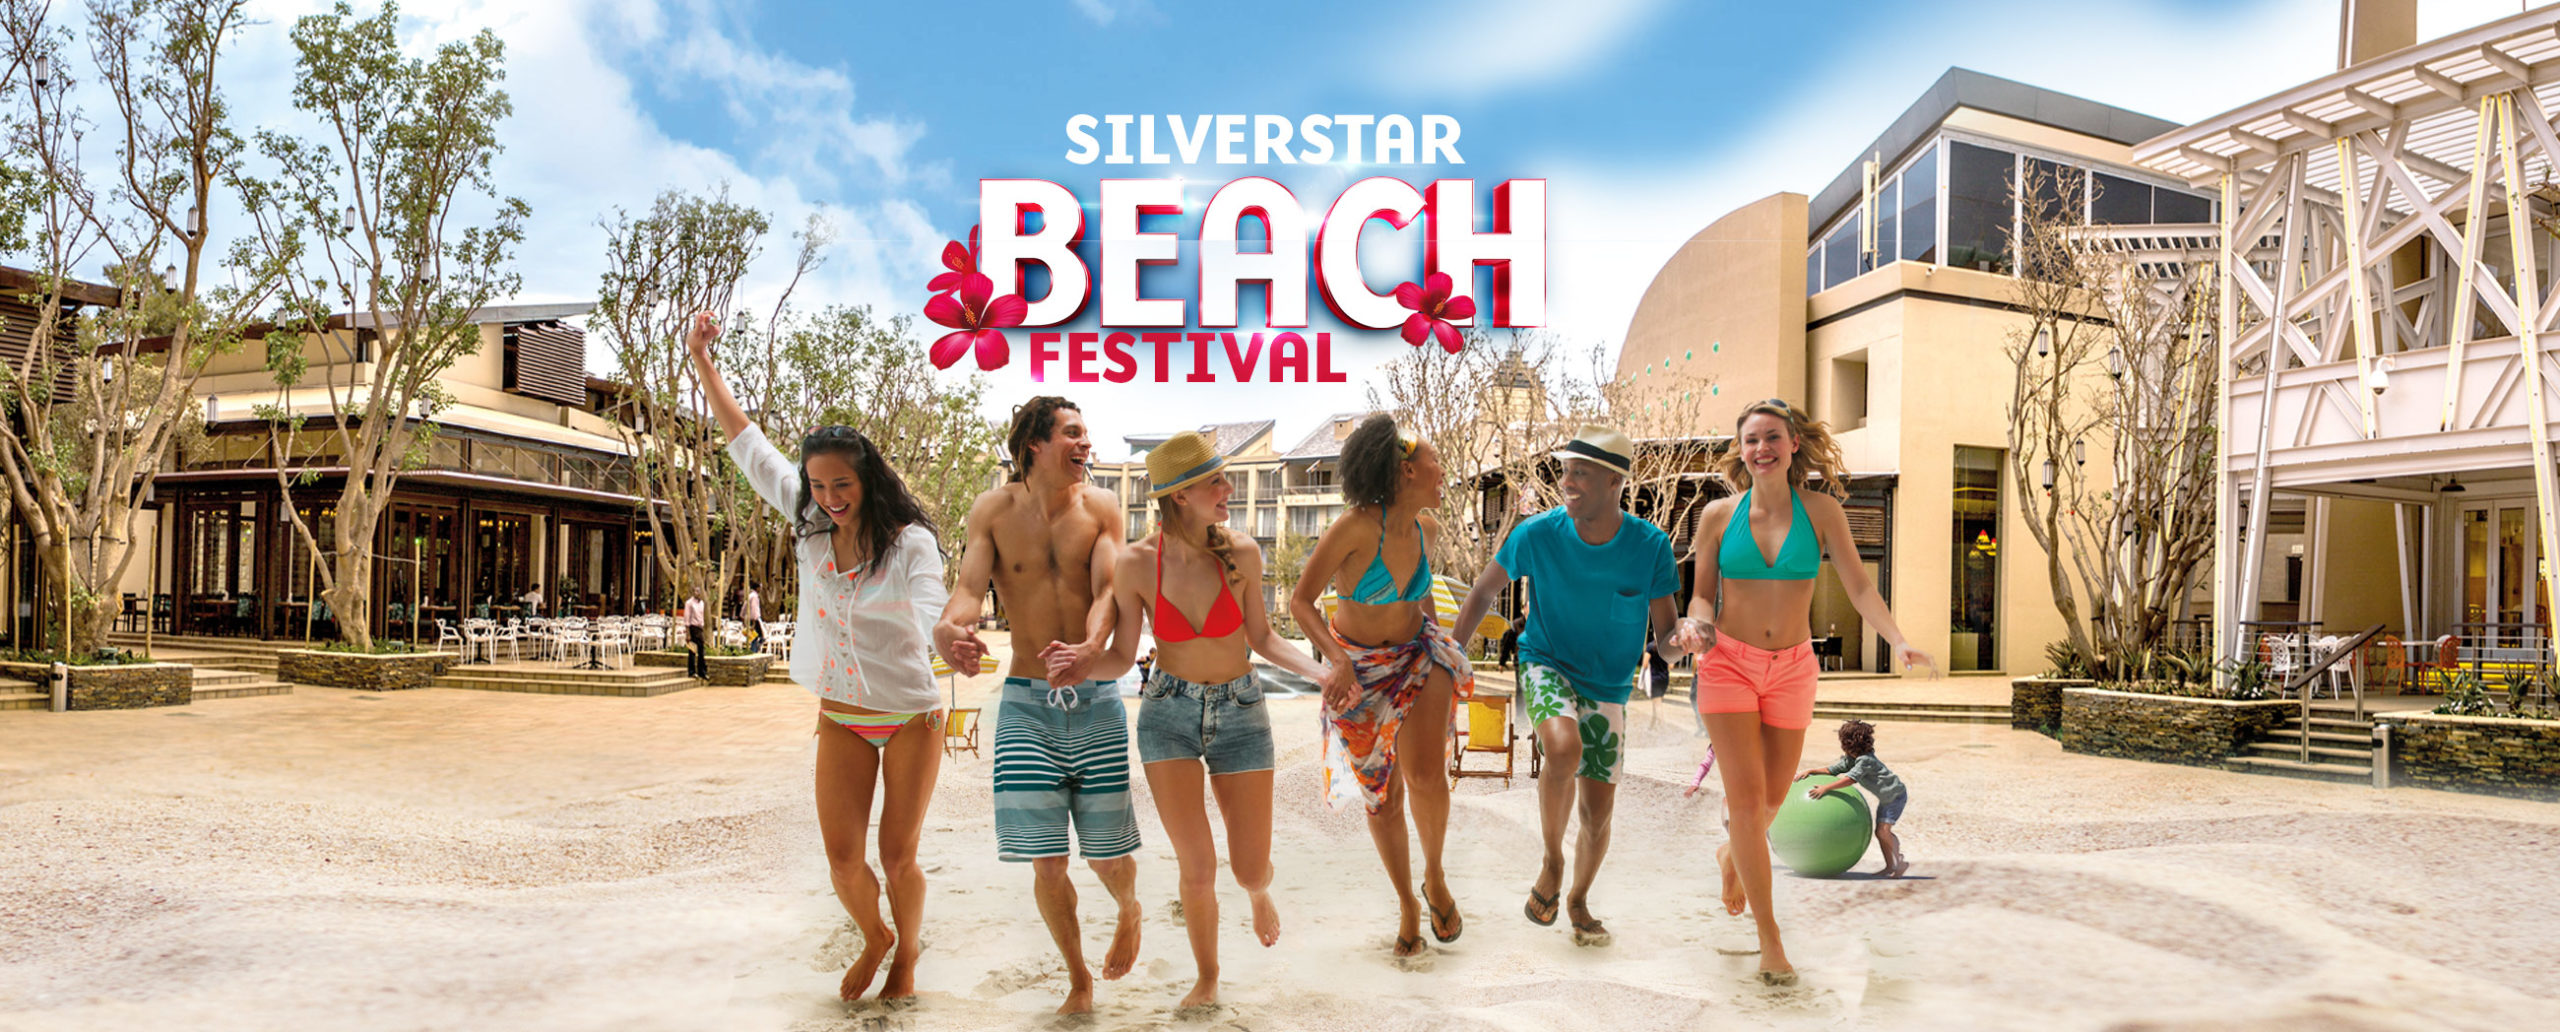 Silverstar Beach Festival event banner at The Square